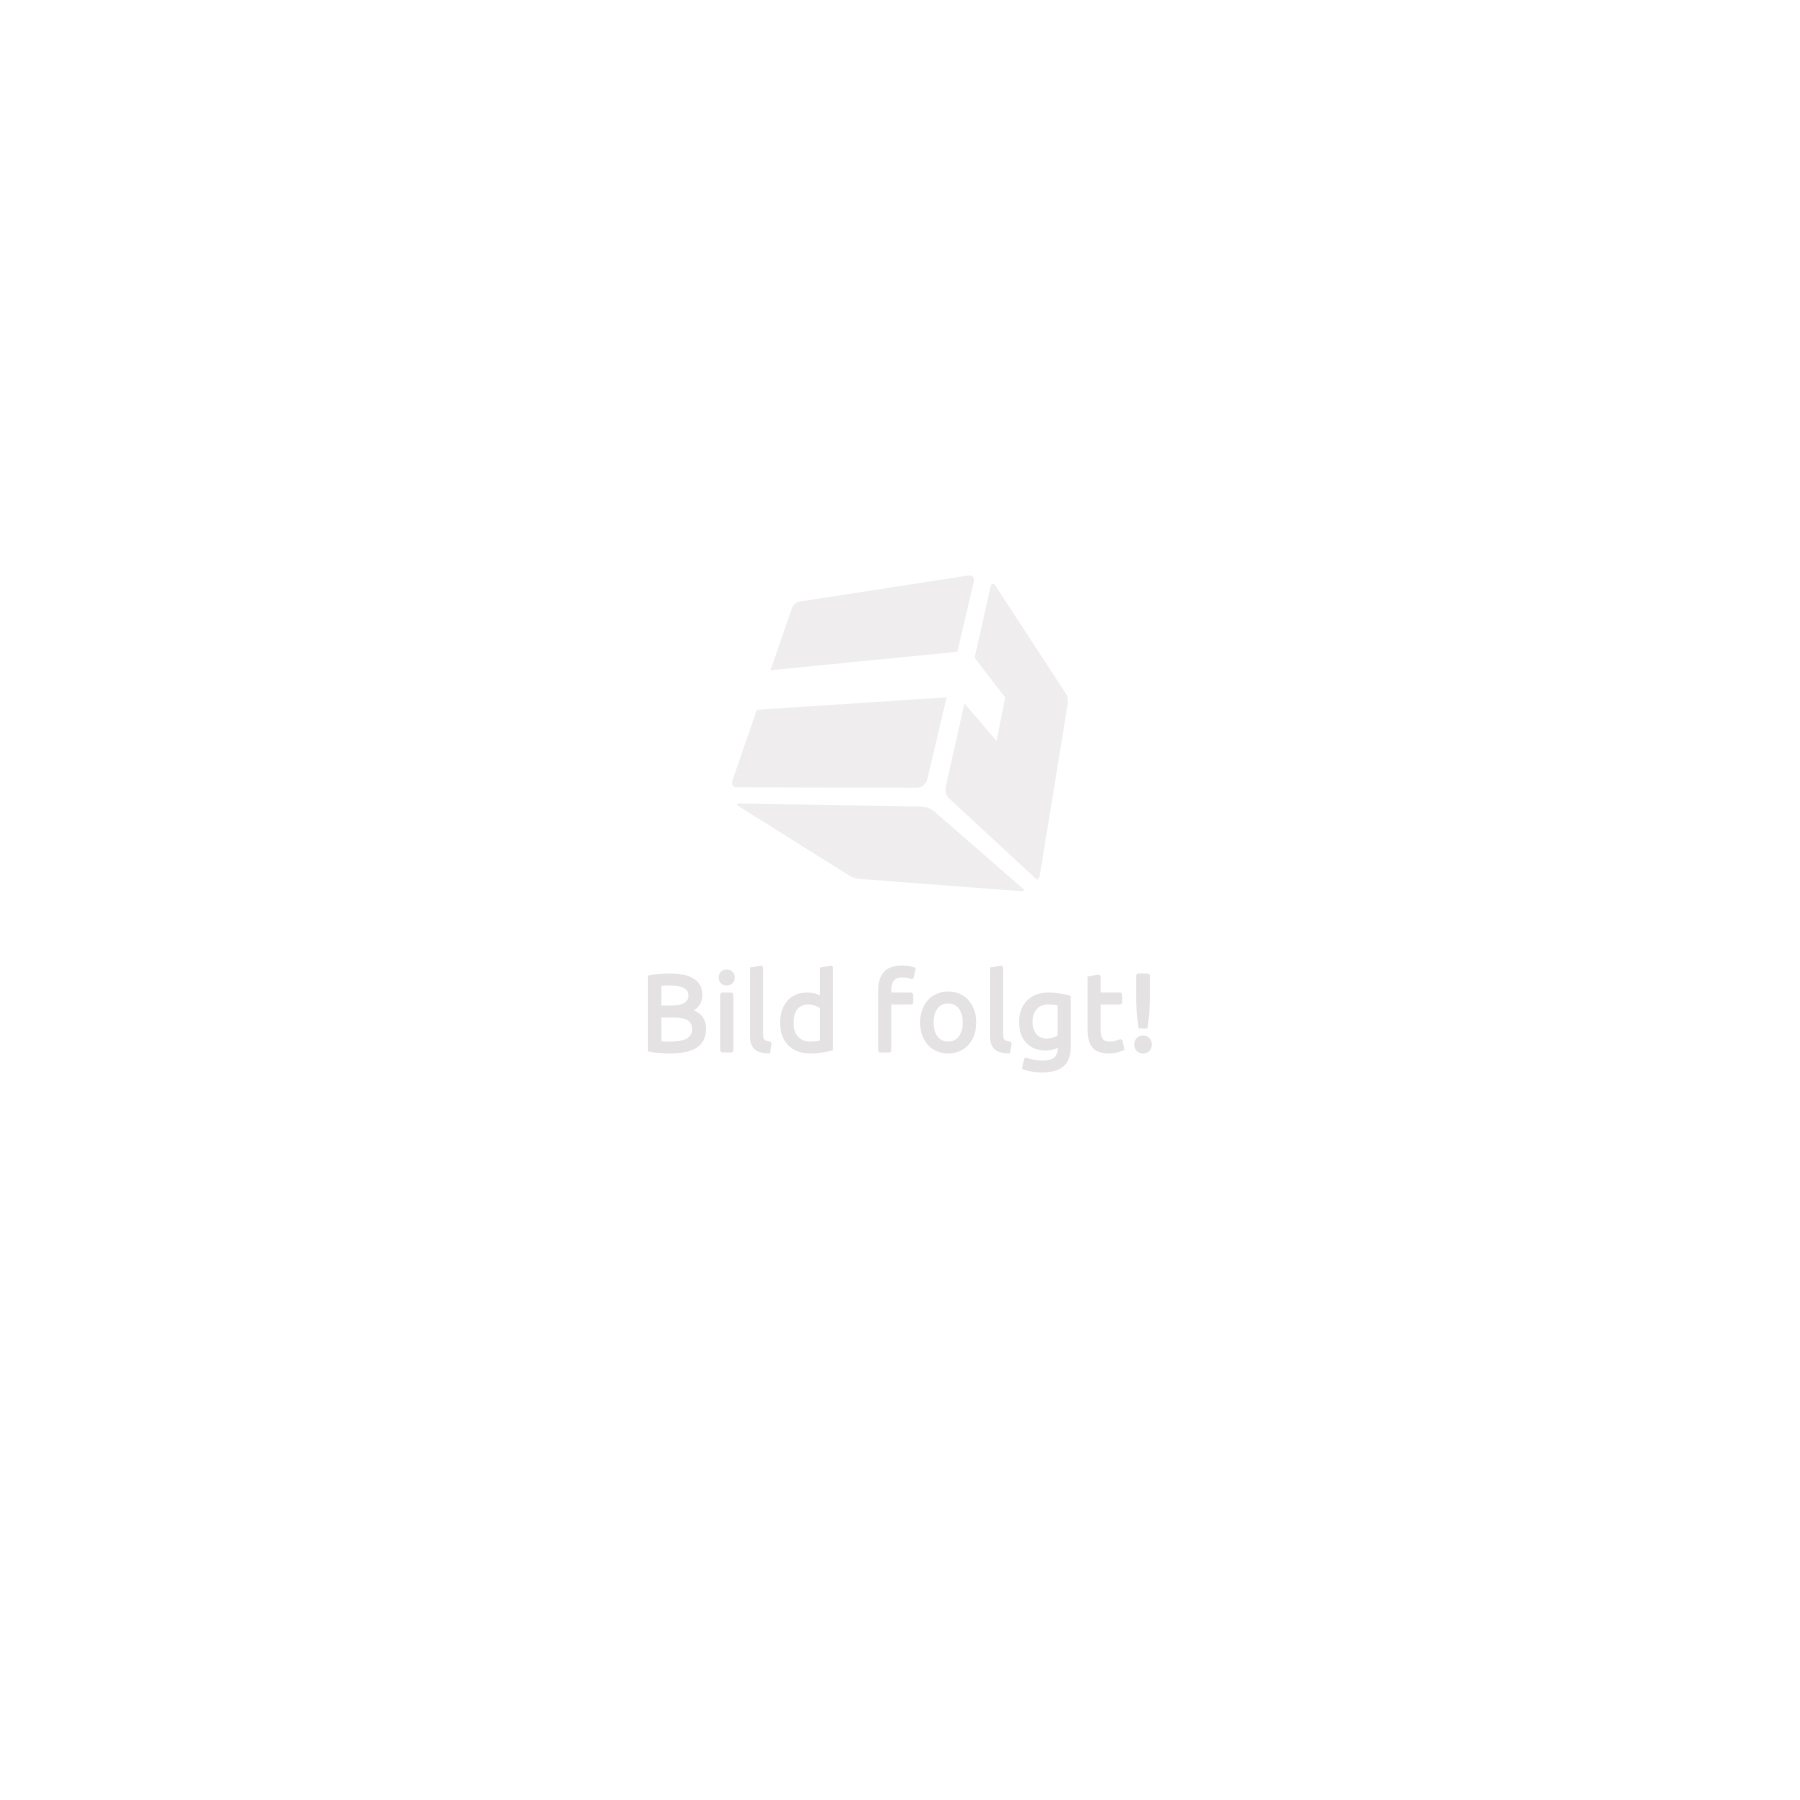 Luxury office chair made of black artificial leather